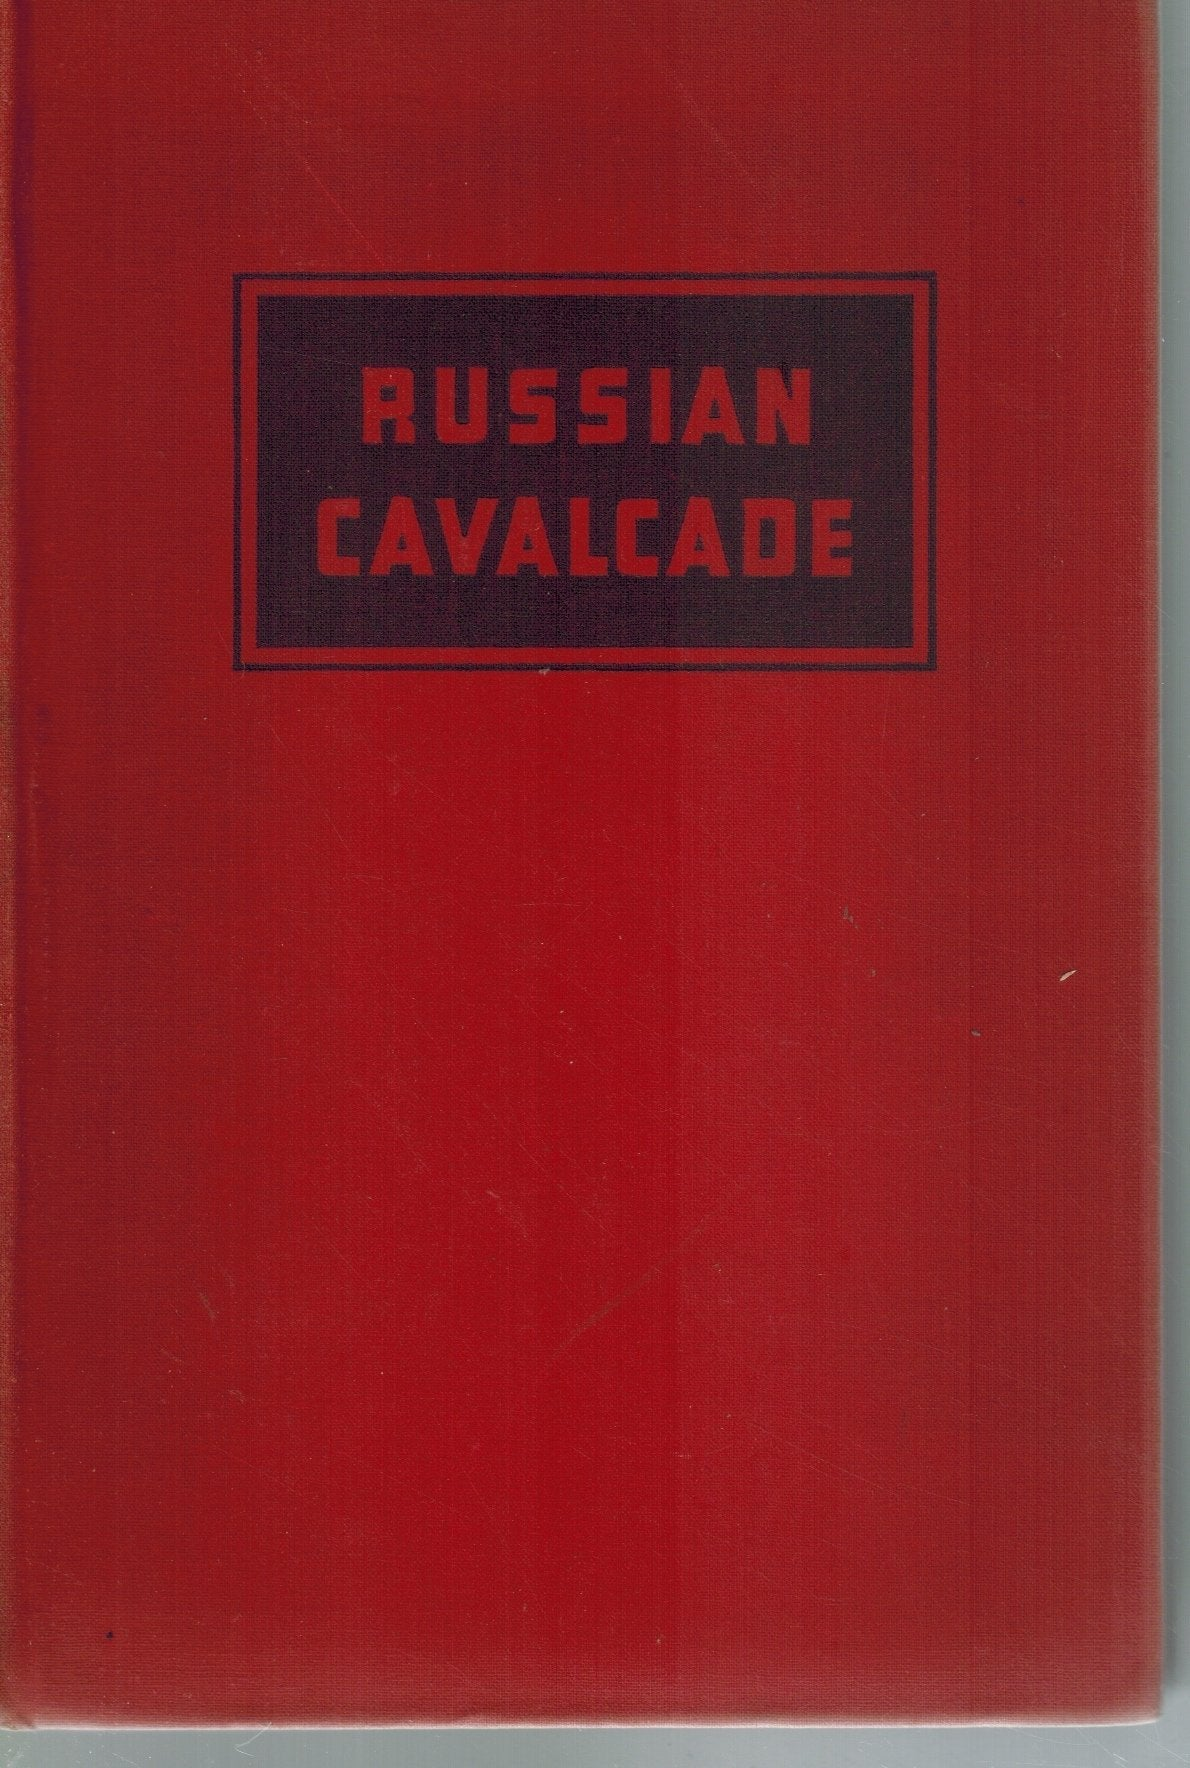 RUSSIAN CAVALCADE  A Military Record  by Parry, Albert